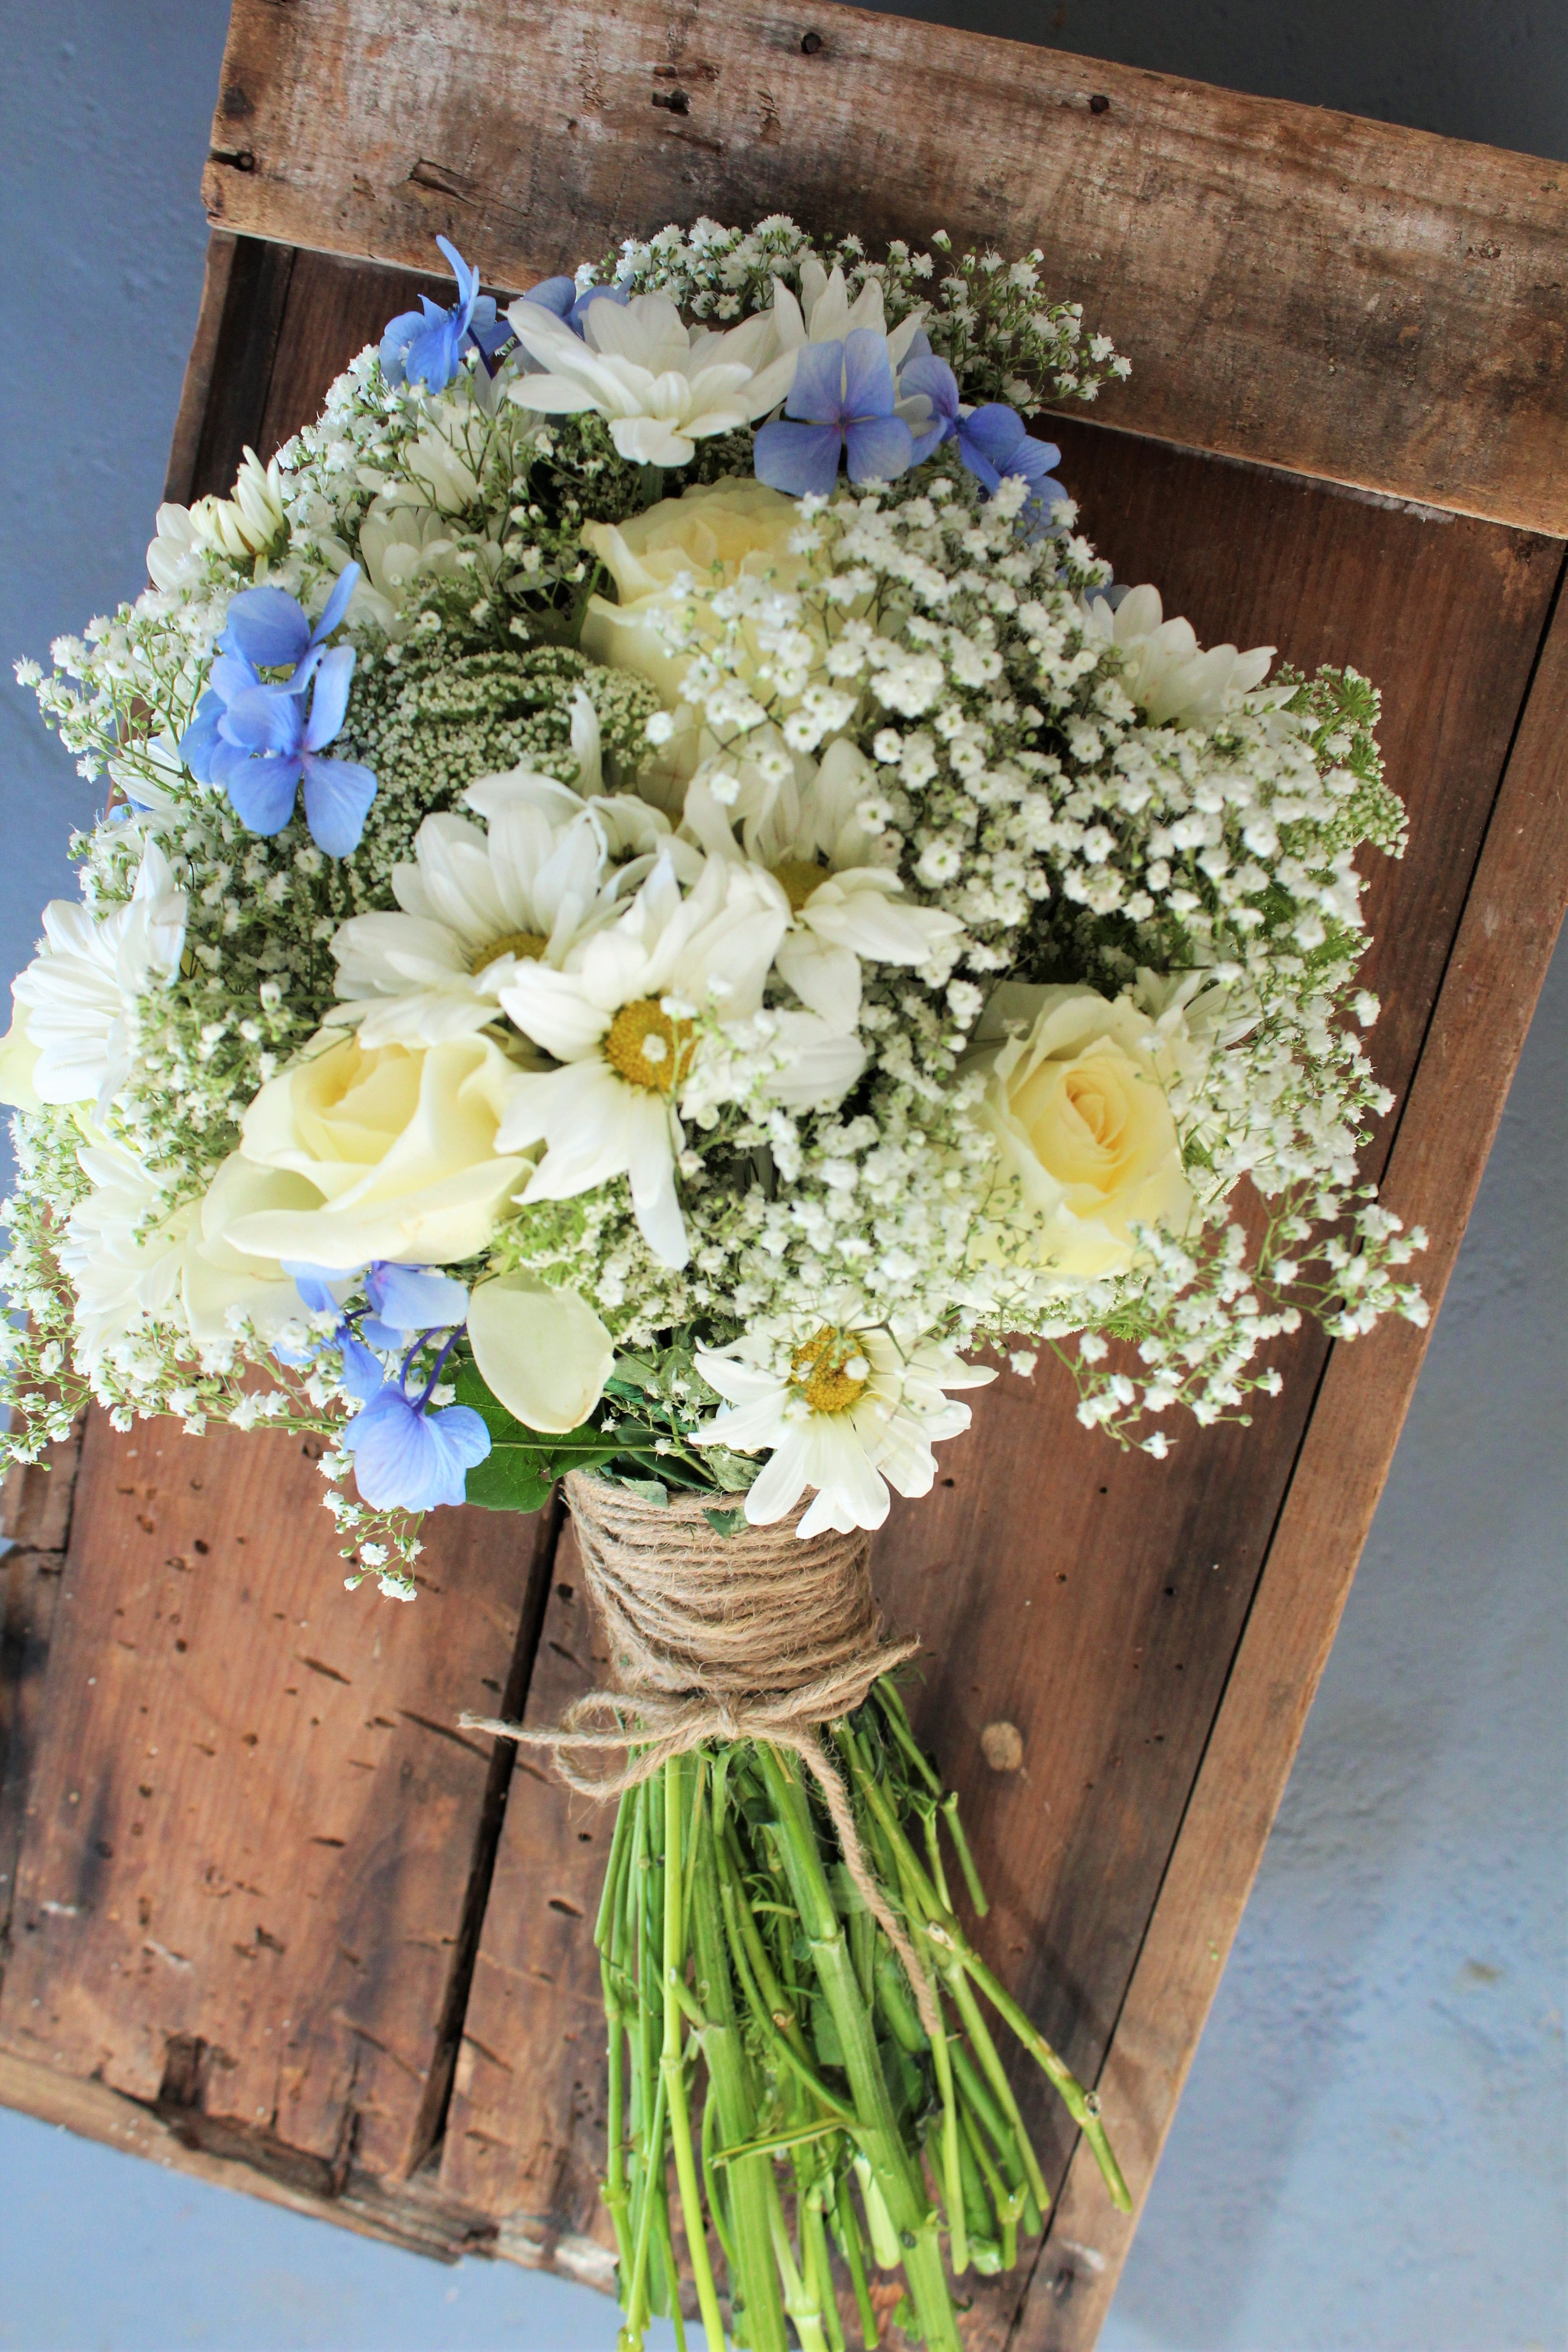 Wedding flowers on a budget this blue and white bouquet was made wedding flowers on a budget this blue and white bouquet was made for a summer wedding and used babys breath queen annes lace daisy cream roses and izmirmasajfo